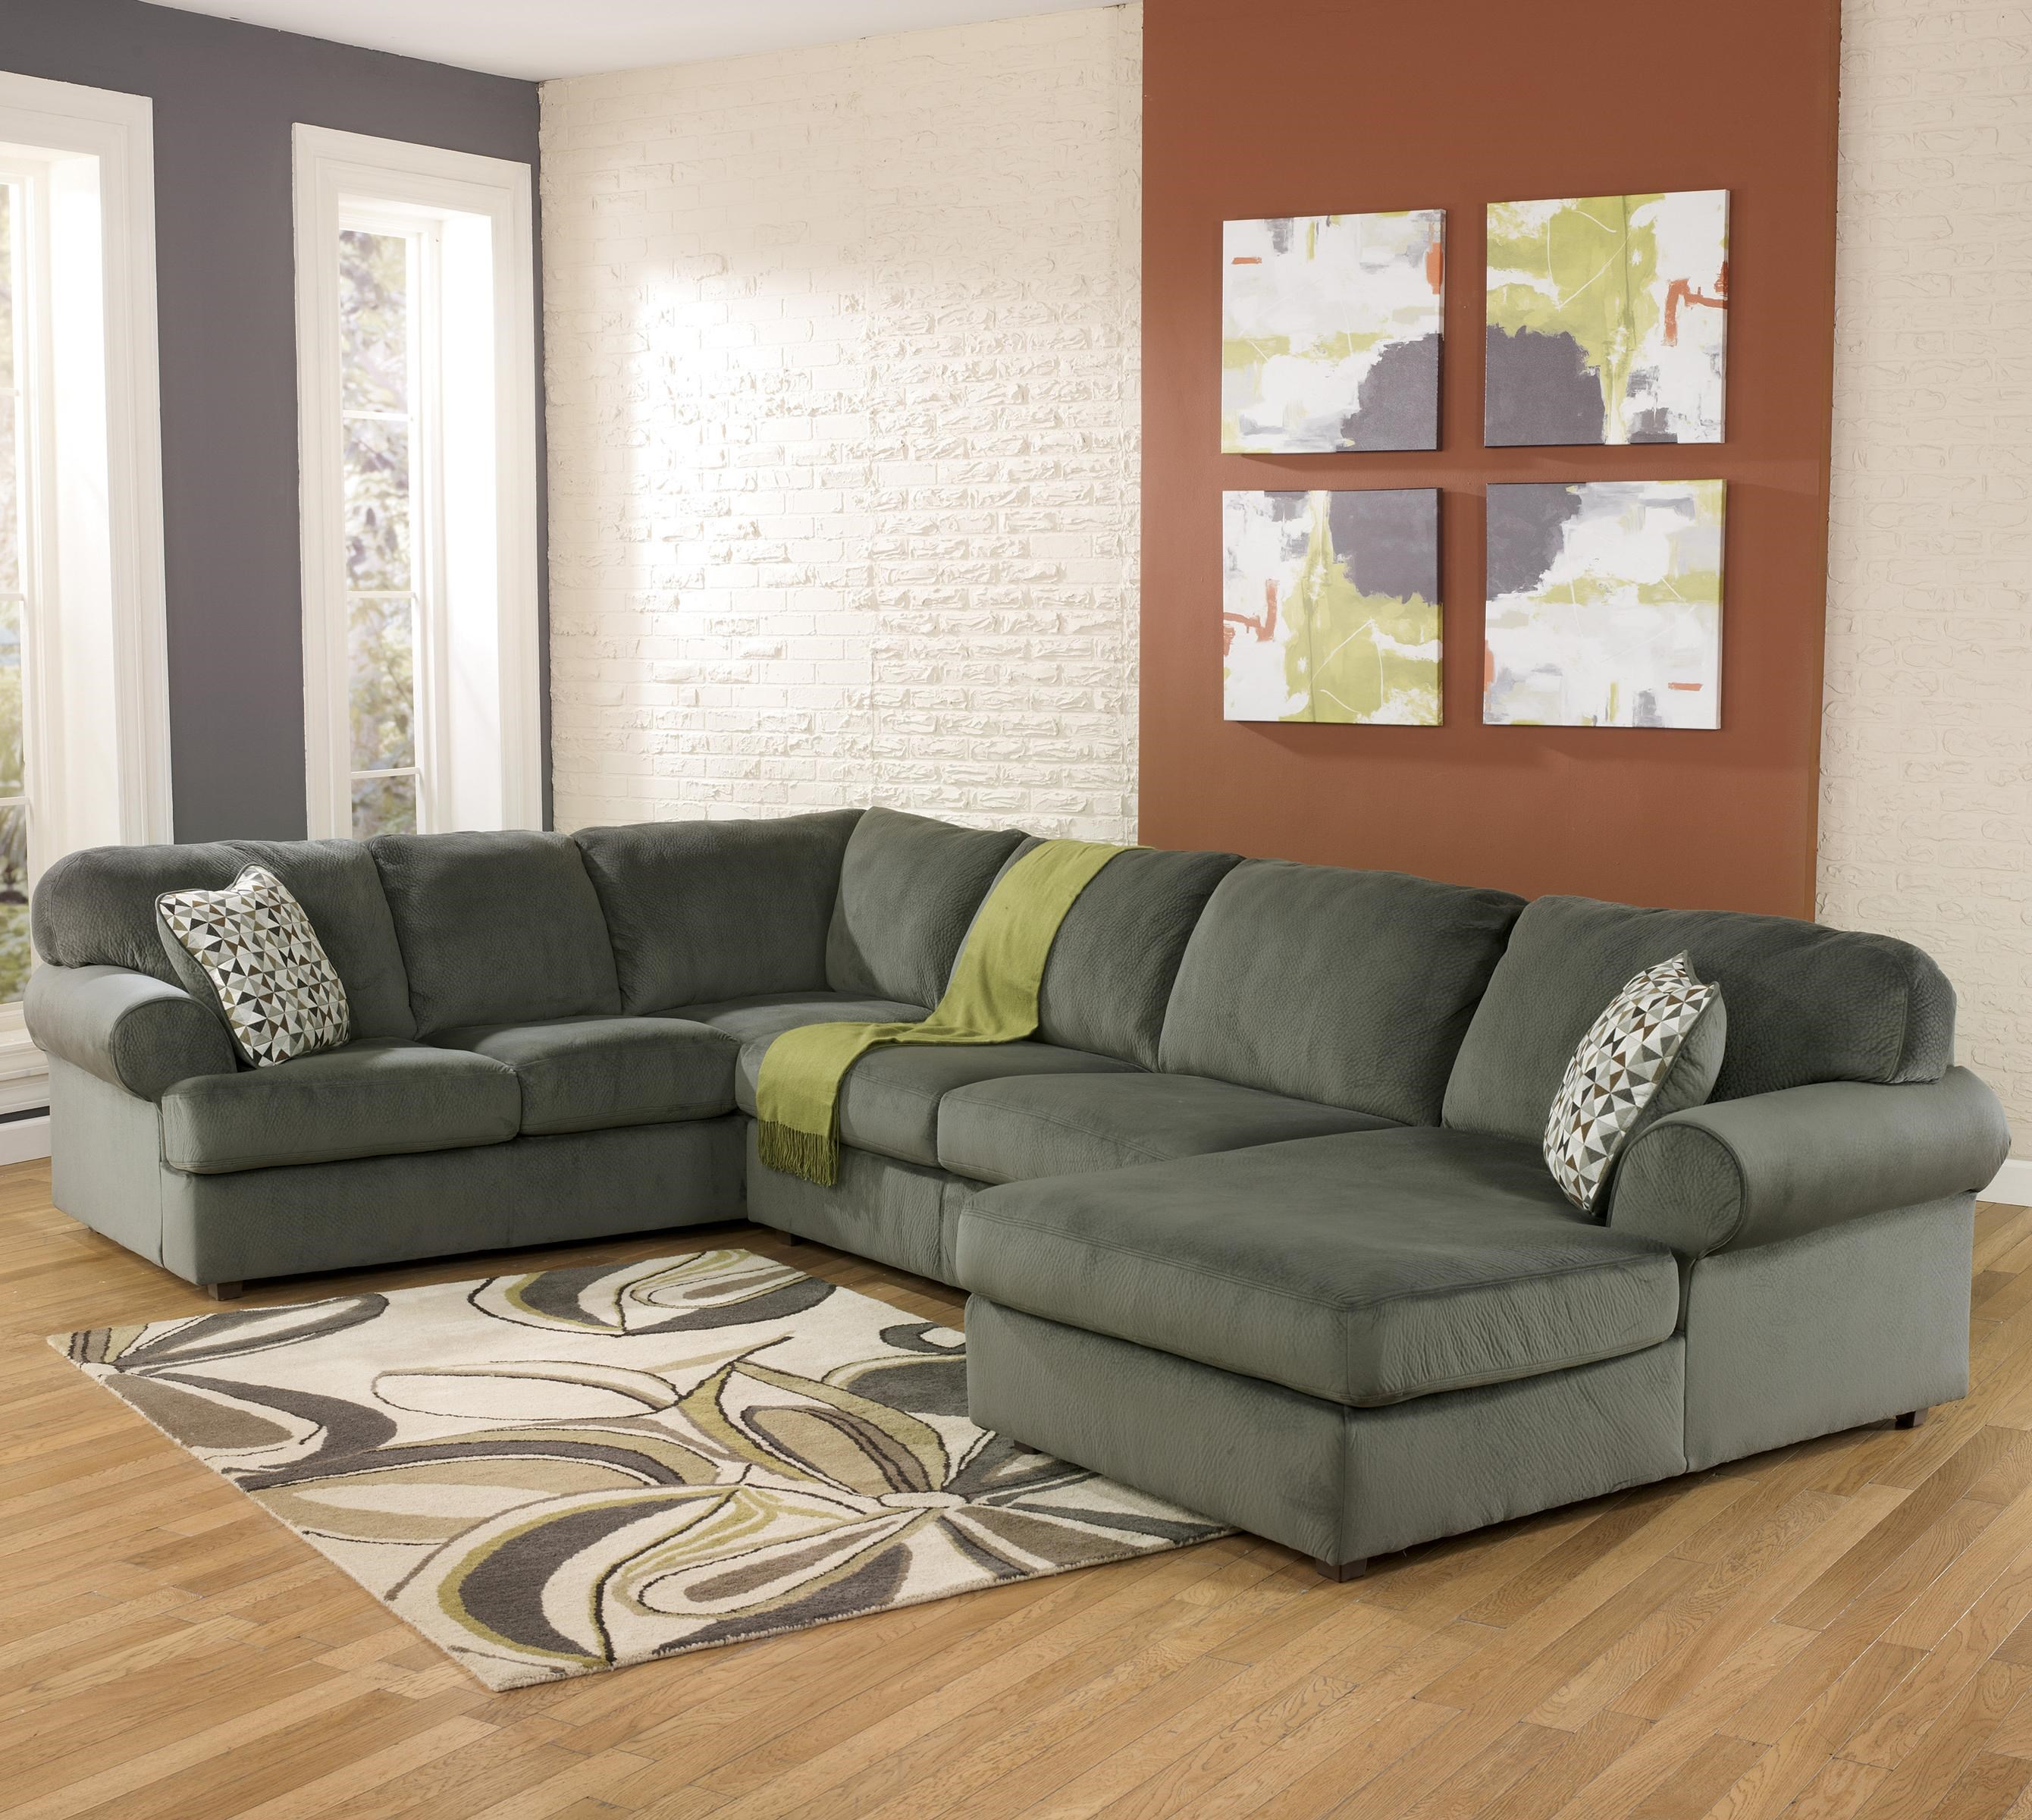 Signature Design By Ashley Jessa Place   Pewter Casual Sectional Sofa With  Right Chaise